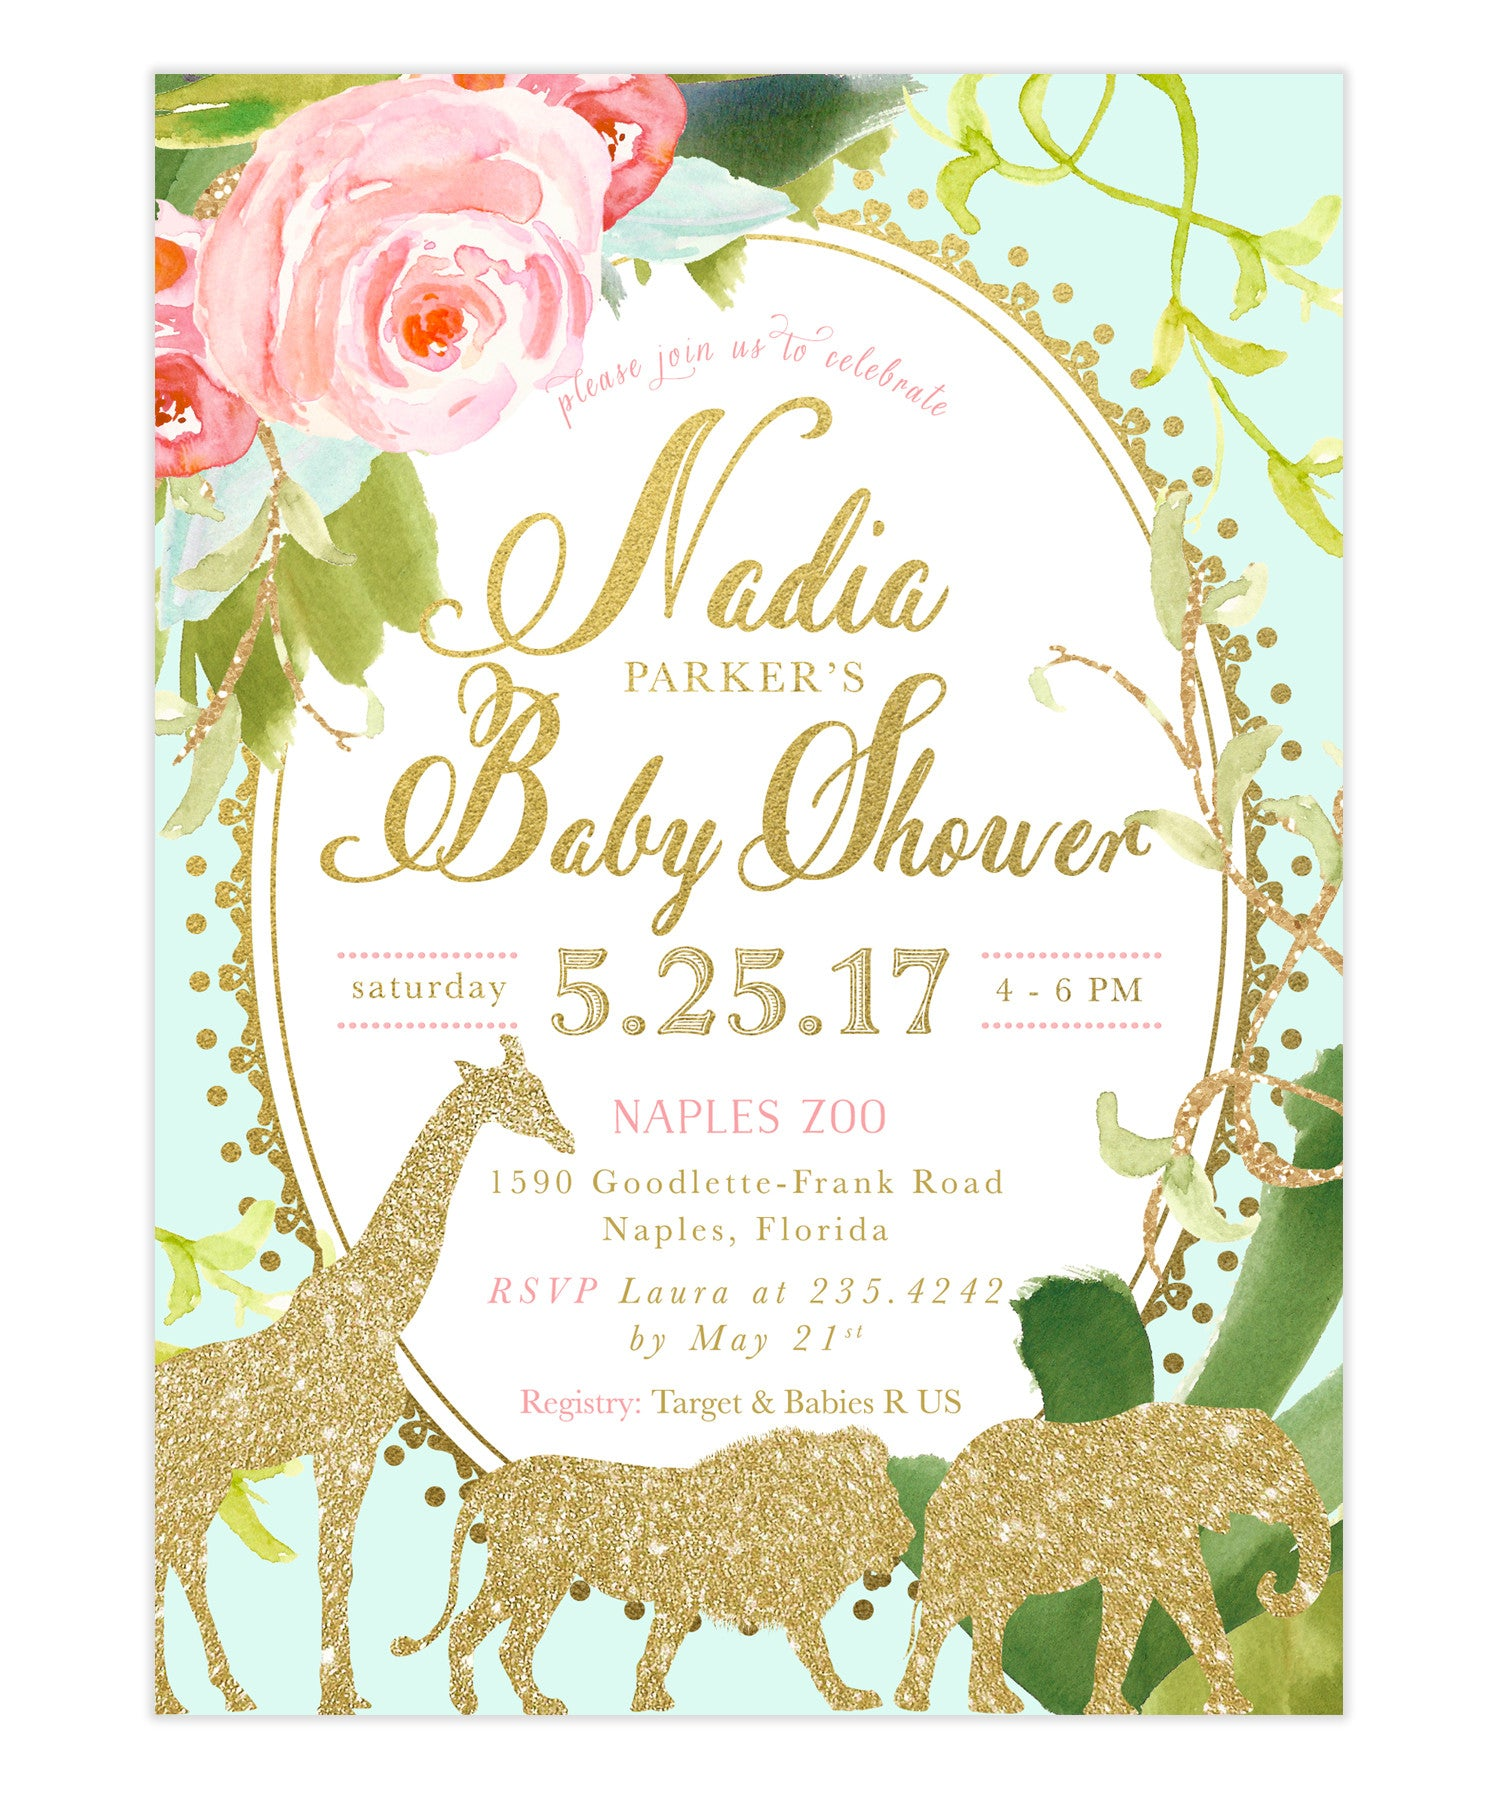 Glam safari jungle baby shower invitation girl or boy mint glam safari jungle baby shower invitation girl or boy mint green gold filmwisefo